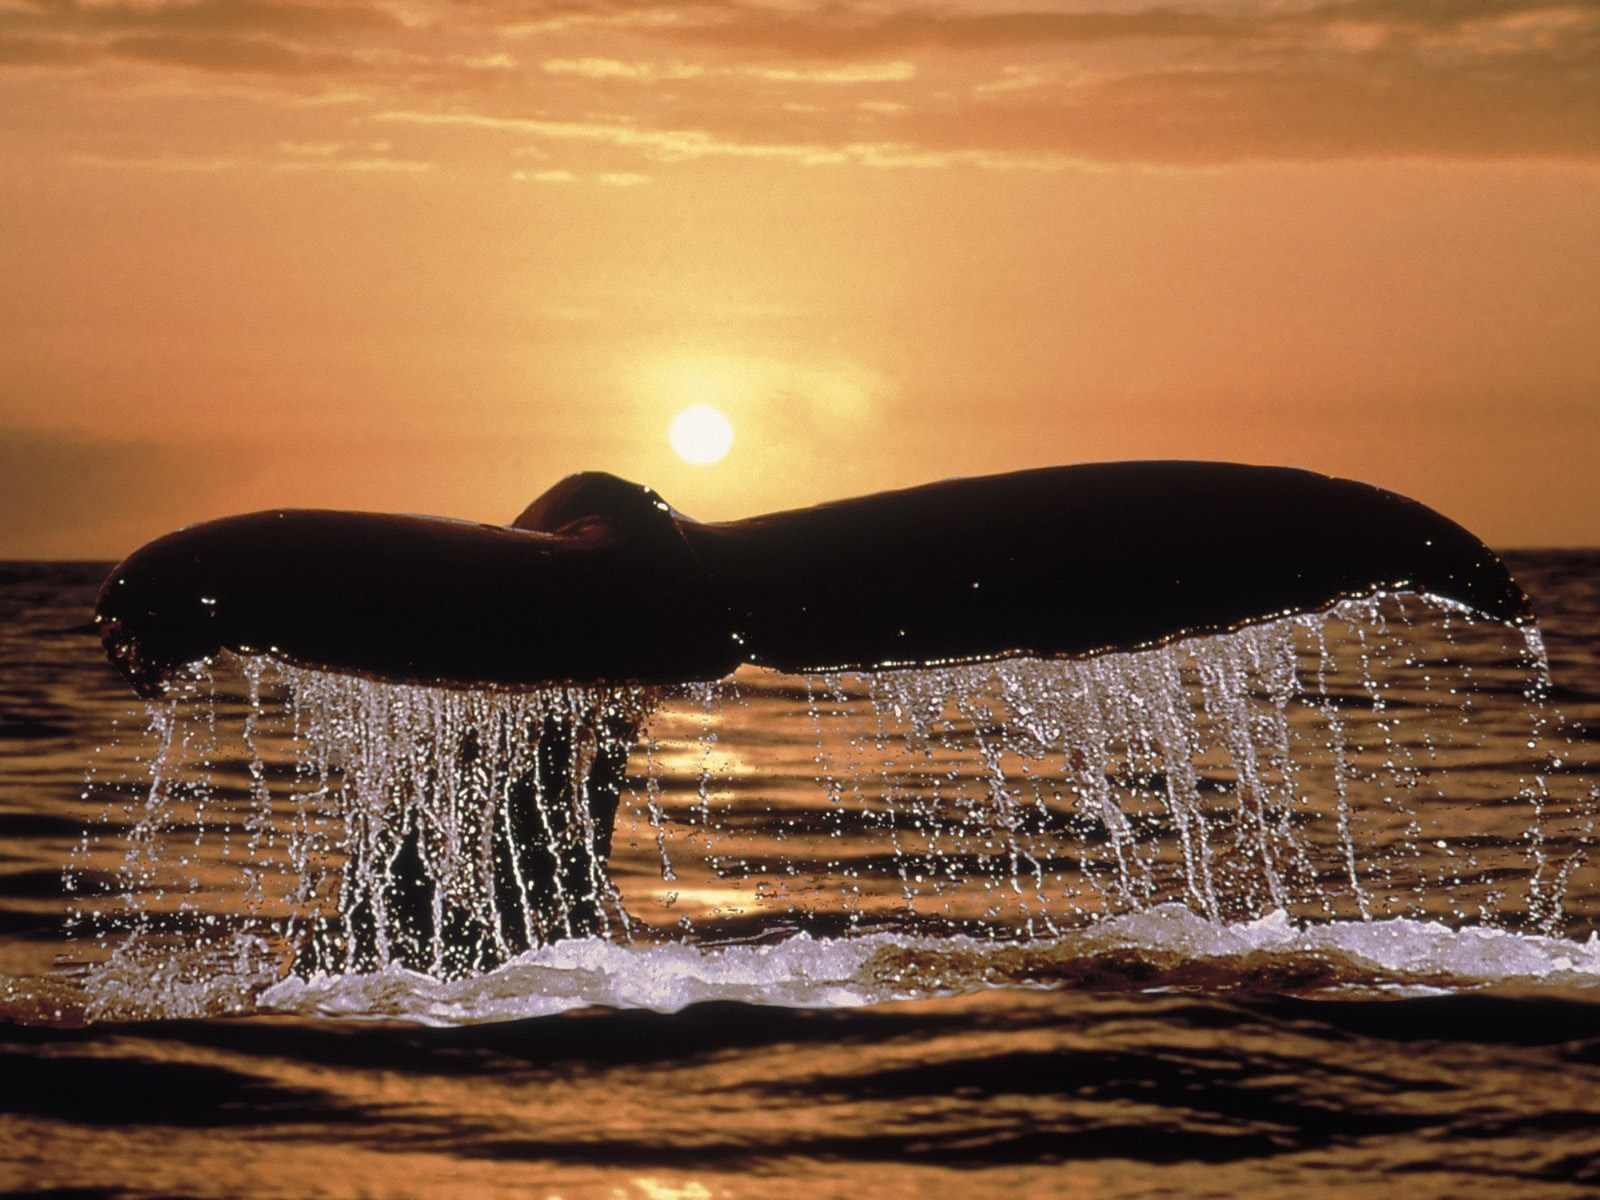 Humpback Whale Tail Wallpapers, Photos, Pictures and Backgrounds